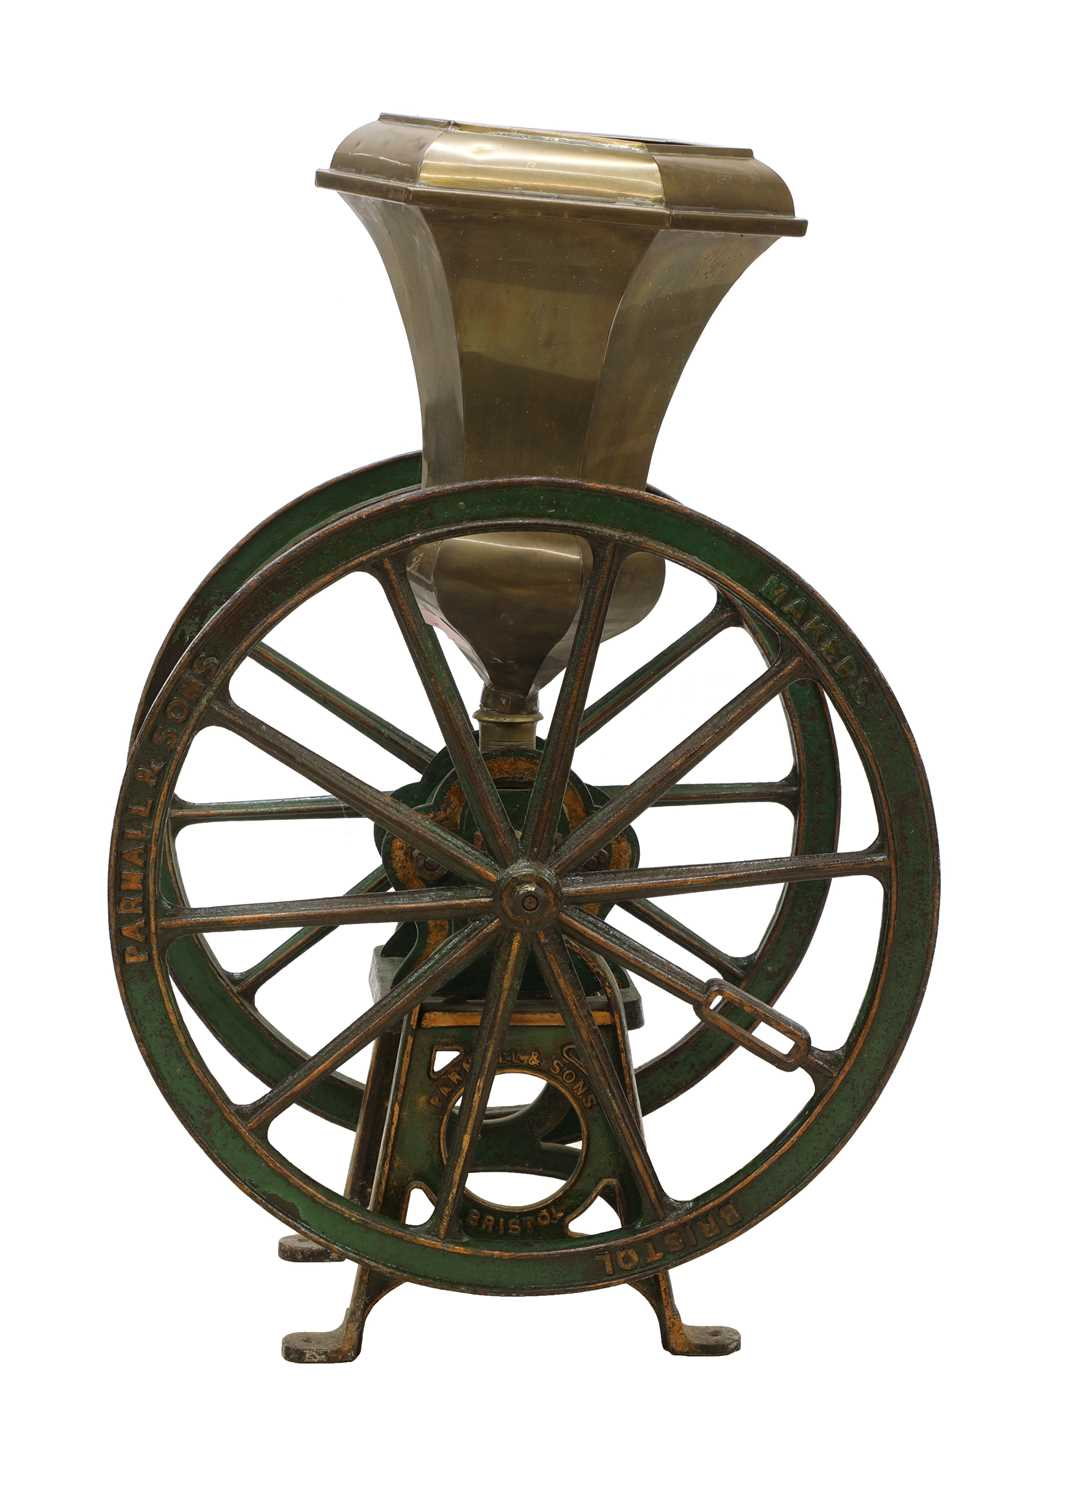 A large coffee grinder by Parnell & Sons, - Image 3 of 8